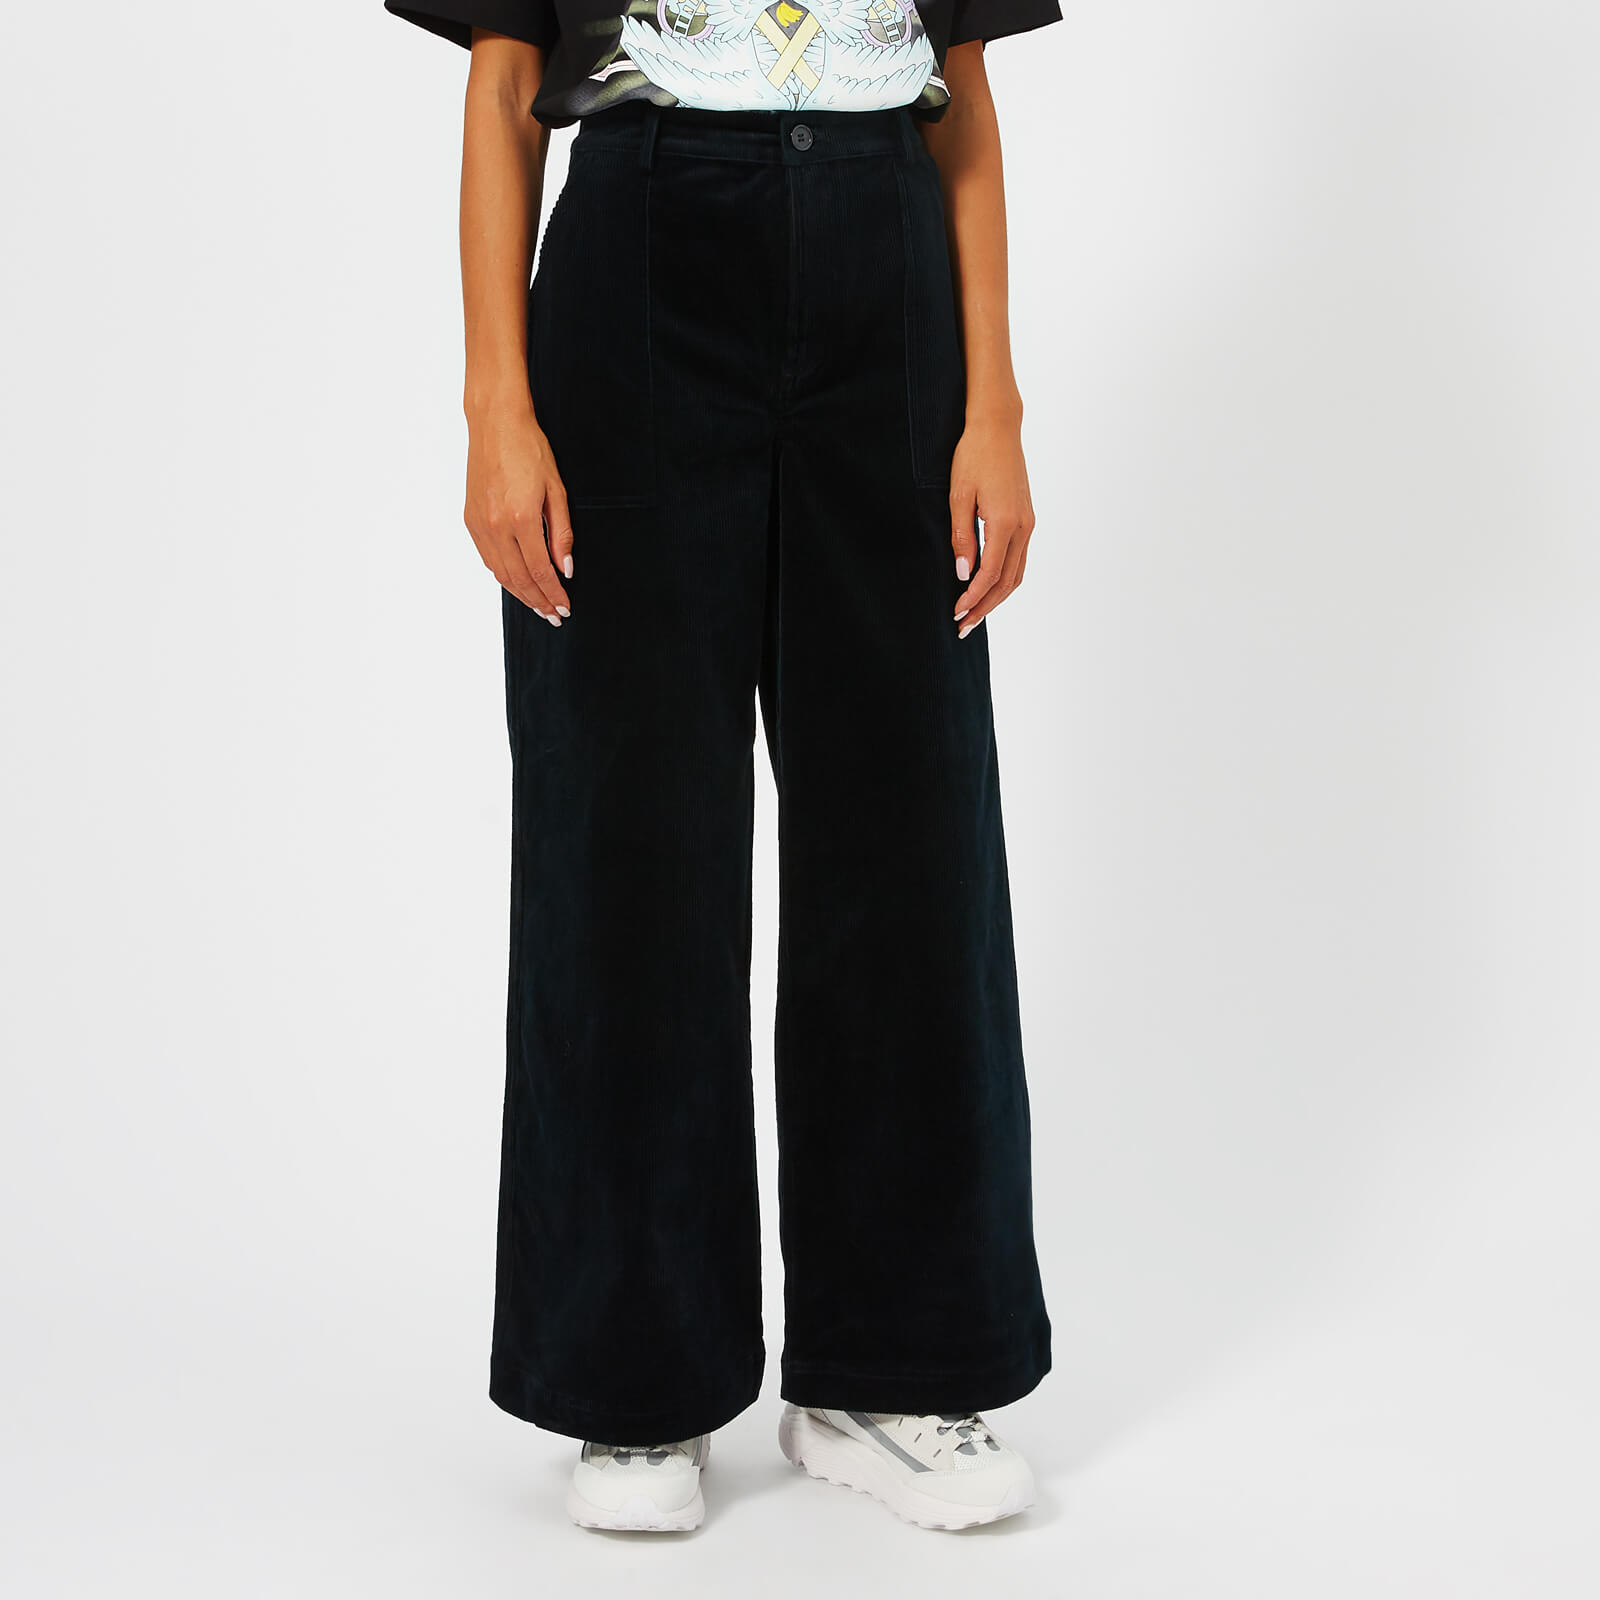 266cfd0816ed23 Ganni Women's Ridgewood Wide Leg Trousers - Total Eclipse - Free UK  Delivery over £50